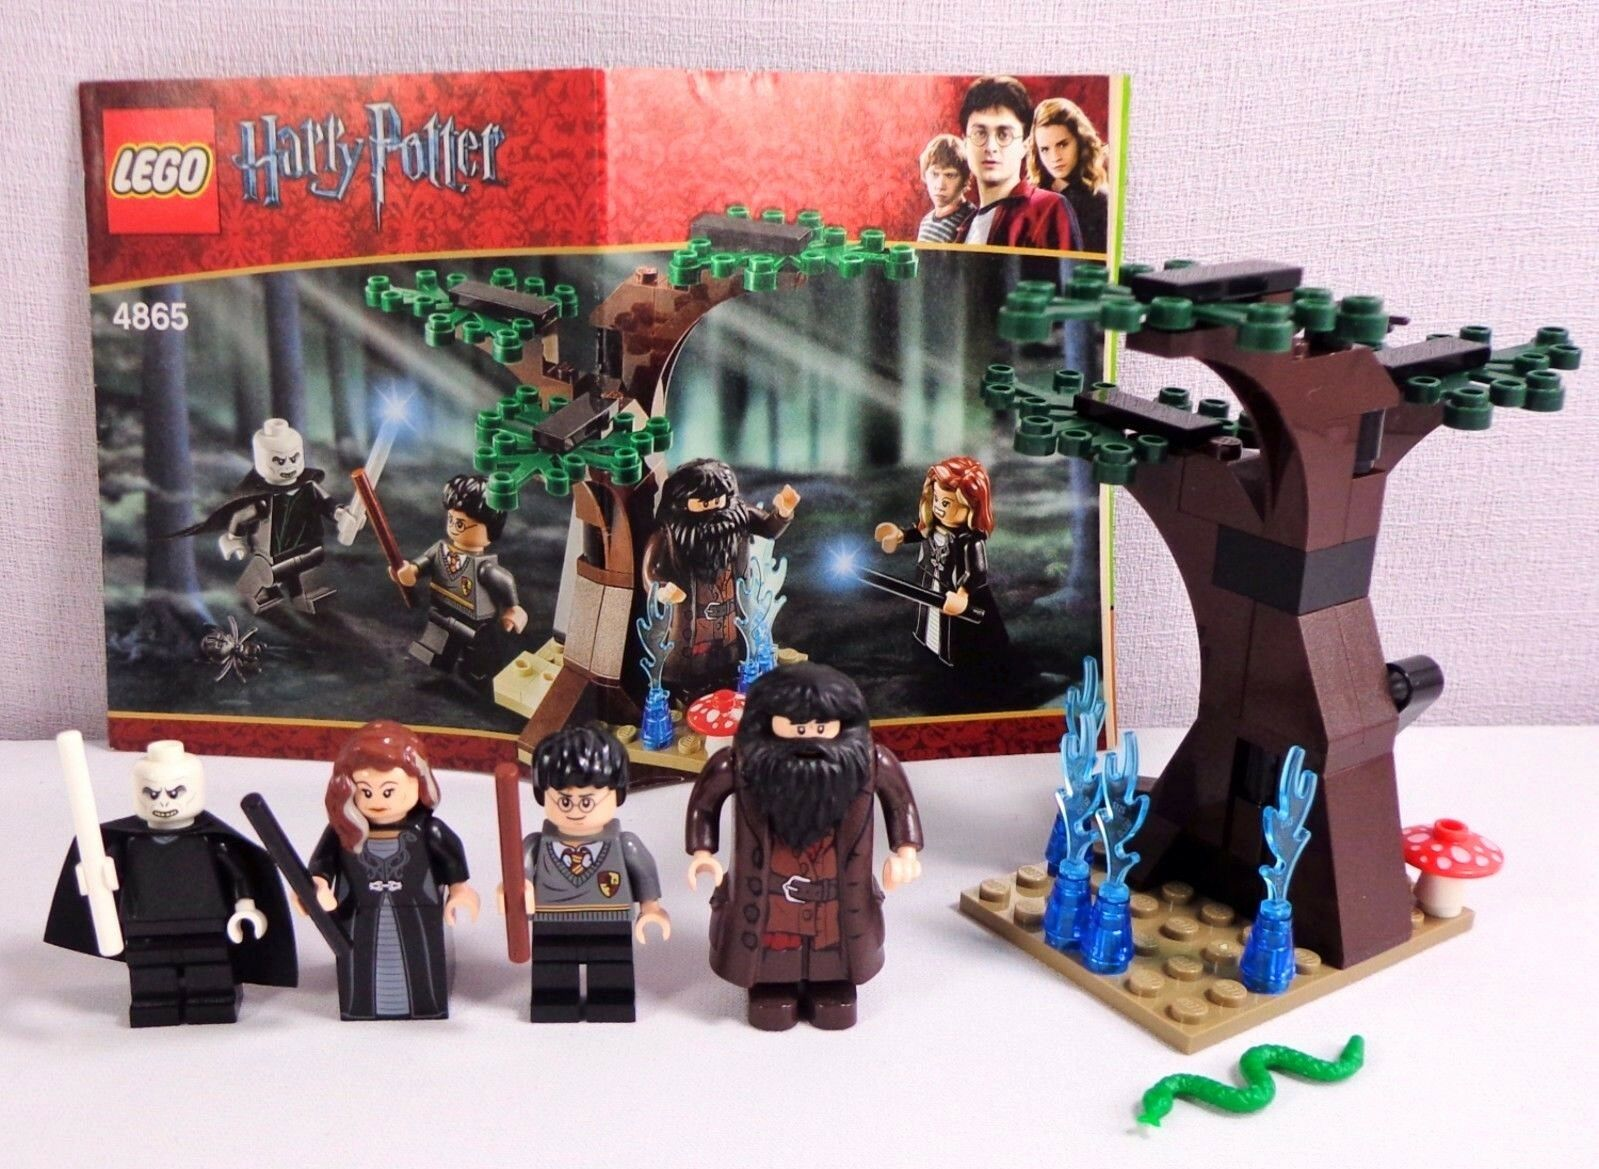 Lego Harry Potter Complete Set 4865 The Forbidden Forest with 4 Minifigs